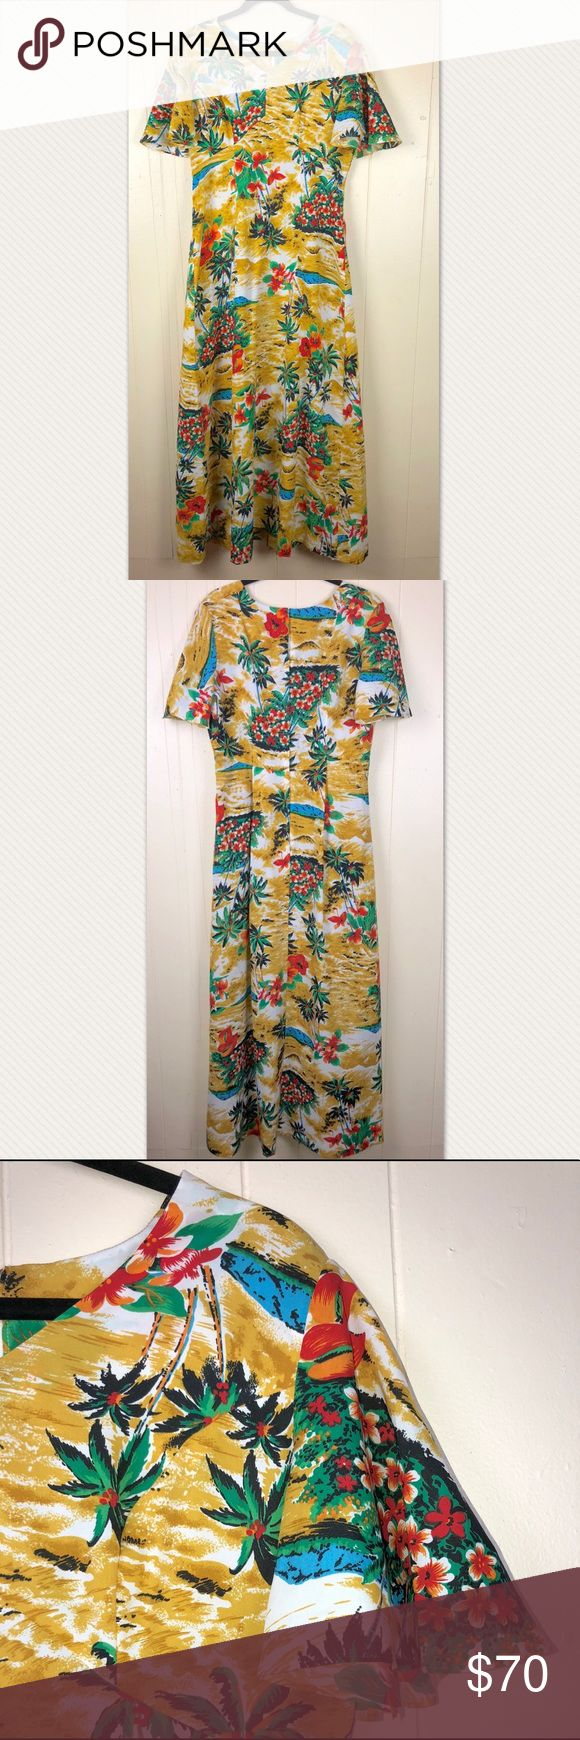 """Vintage Royal Hawaiian Floor Length Maxi Sz 14/16 ✿Size: 14/16 ✿Color: Golden, Red, Green ✿Design: Floor Length Maxi Dress ✿Neckline: V- Nec ✿Materials: Polyester Blend  Measurements(laying flat)(approximate) Length: 61.5"""" Underarm to underarm : 21.5"""" Waist: 17.5""""  Condition:Great used condition. No holes, stains or flaws. Royal Hawaiin Dresses Maxi"""